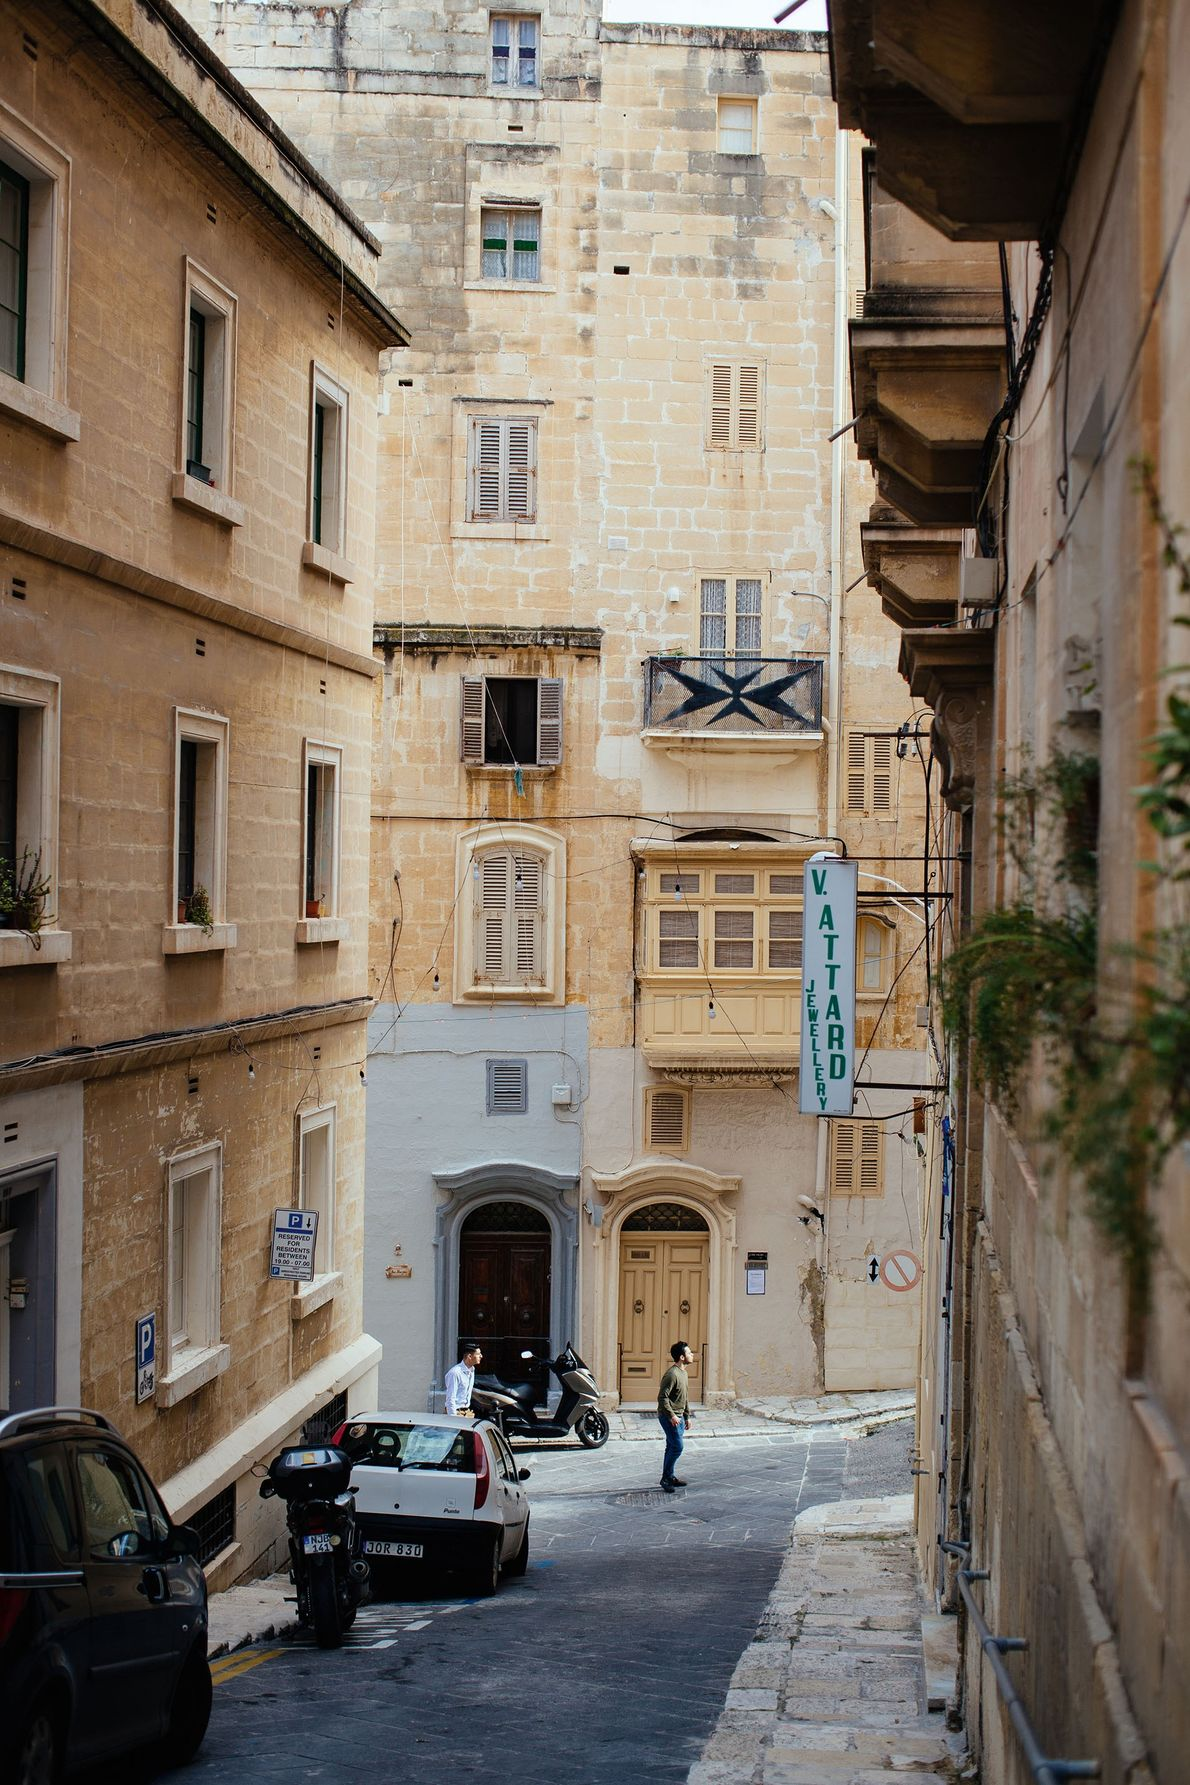 The streets of the capital, Valletta